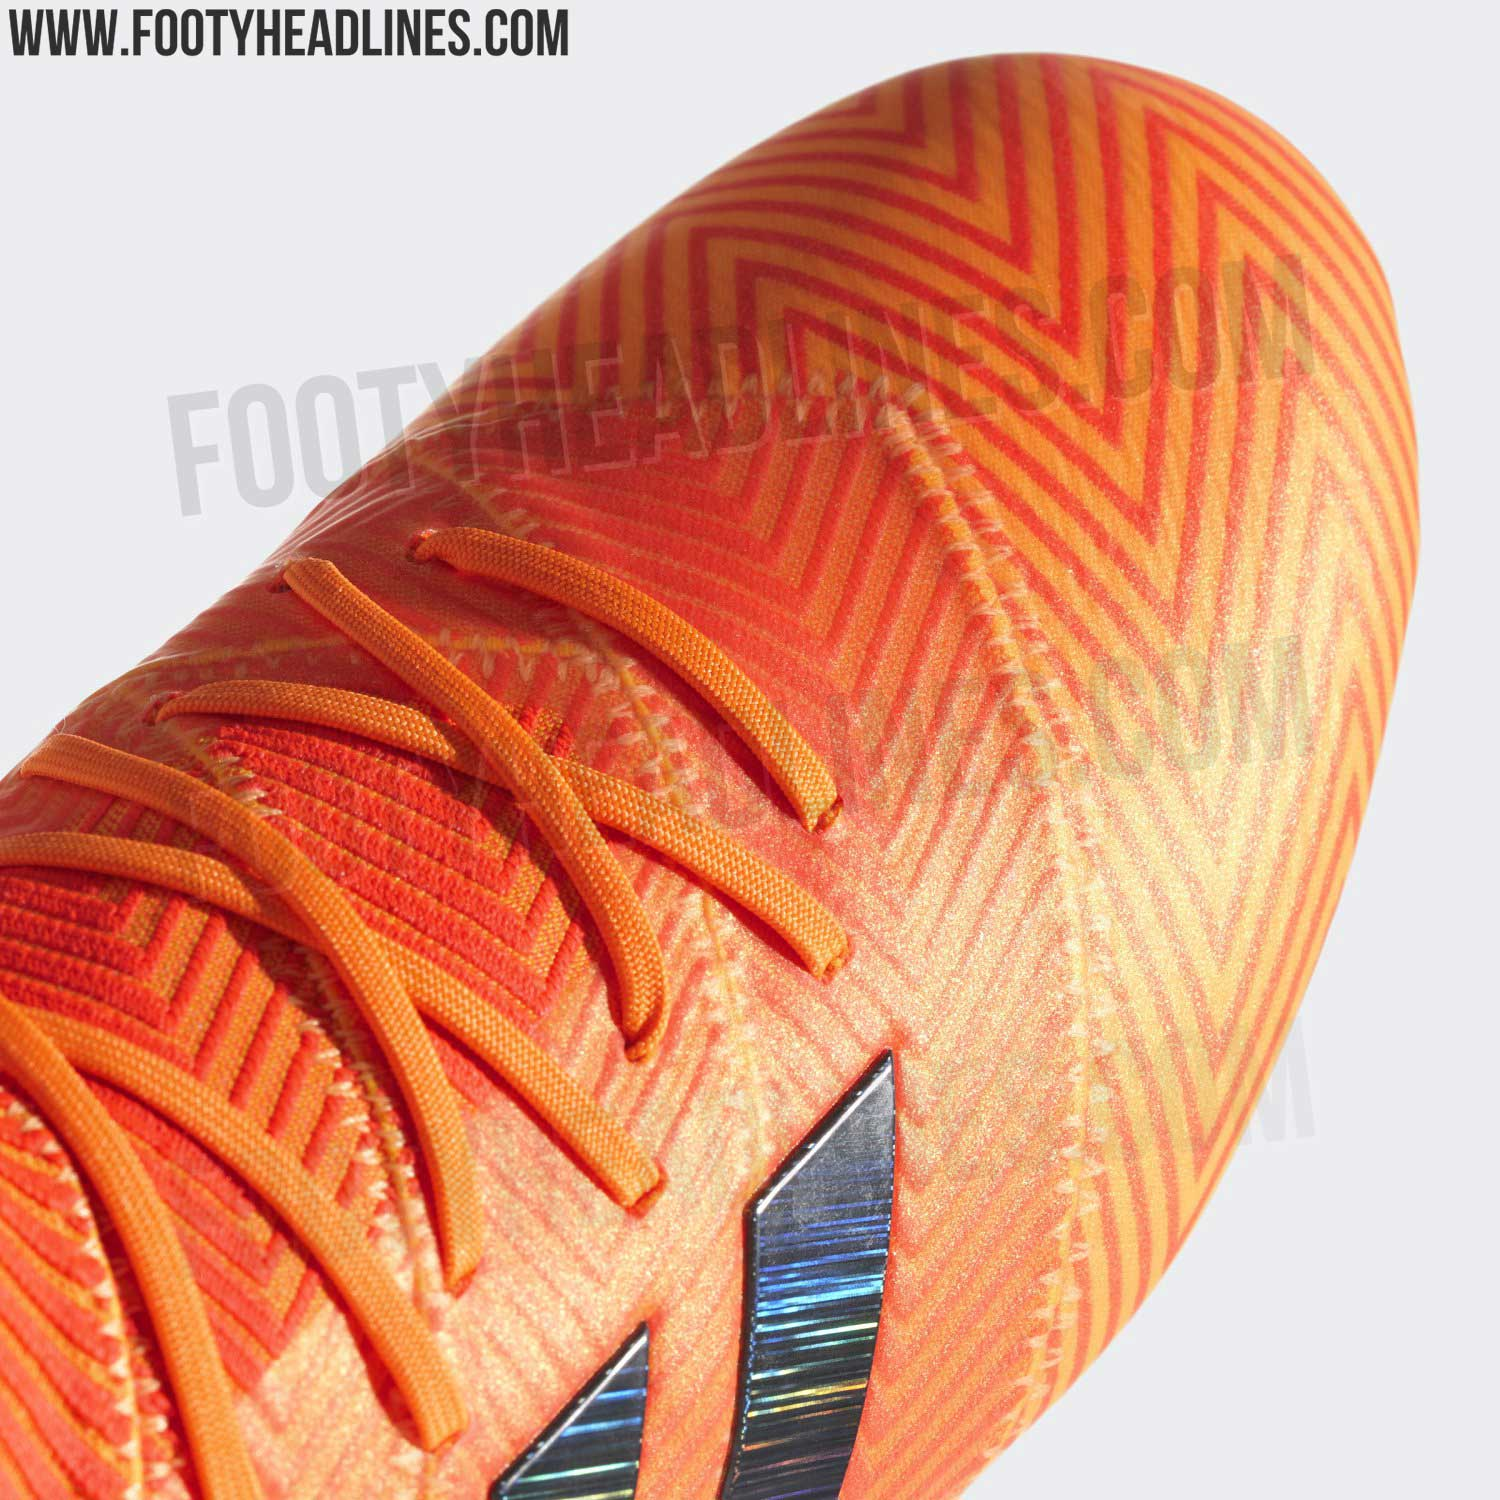 9b04902a4df Adidas  2018 World Cup collection will be called the Energy Mode pack. It  includes this orange Nemeziz 18